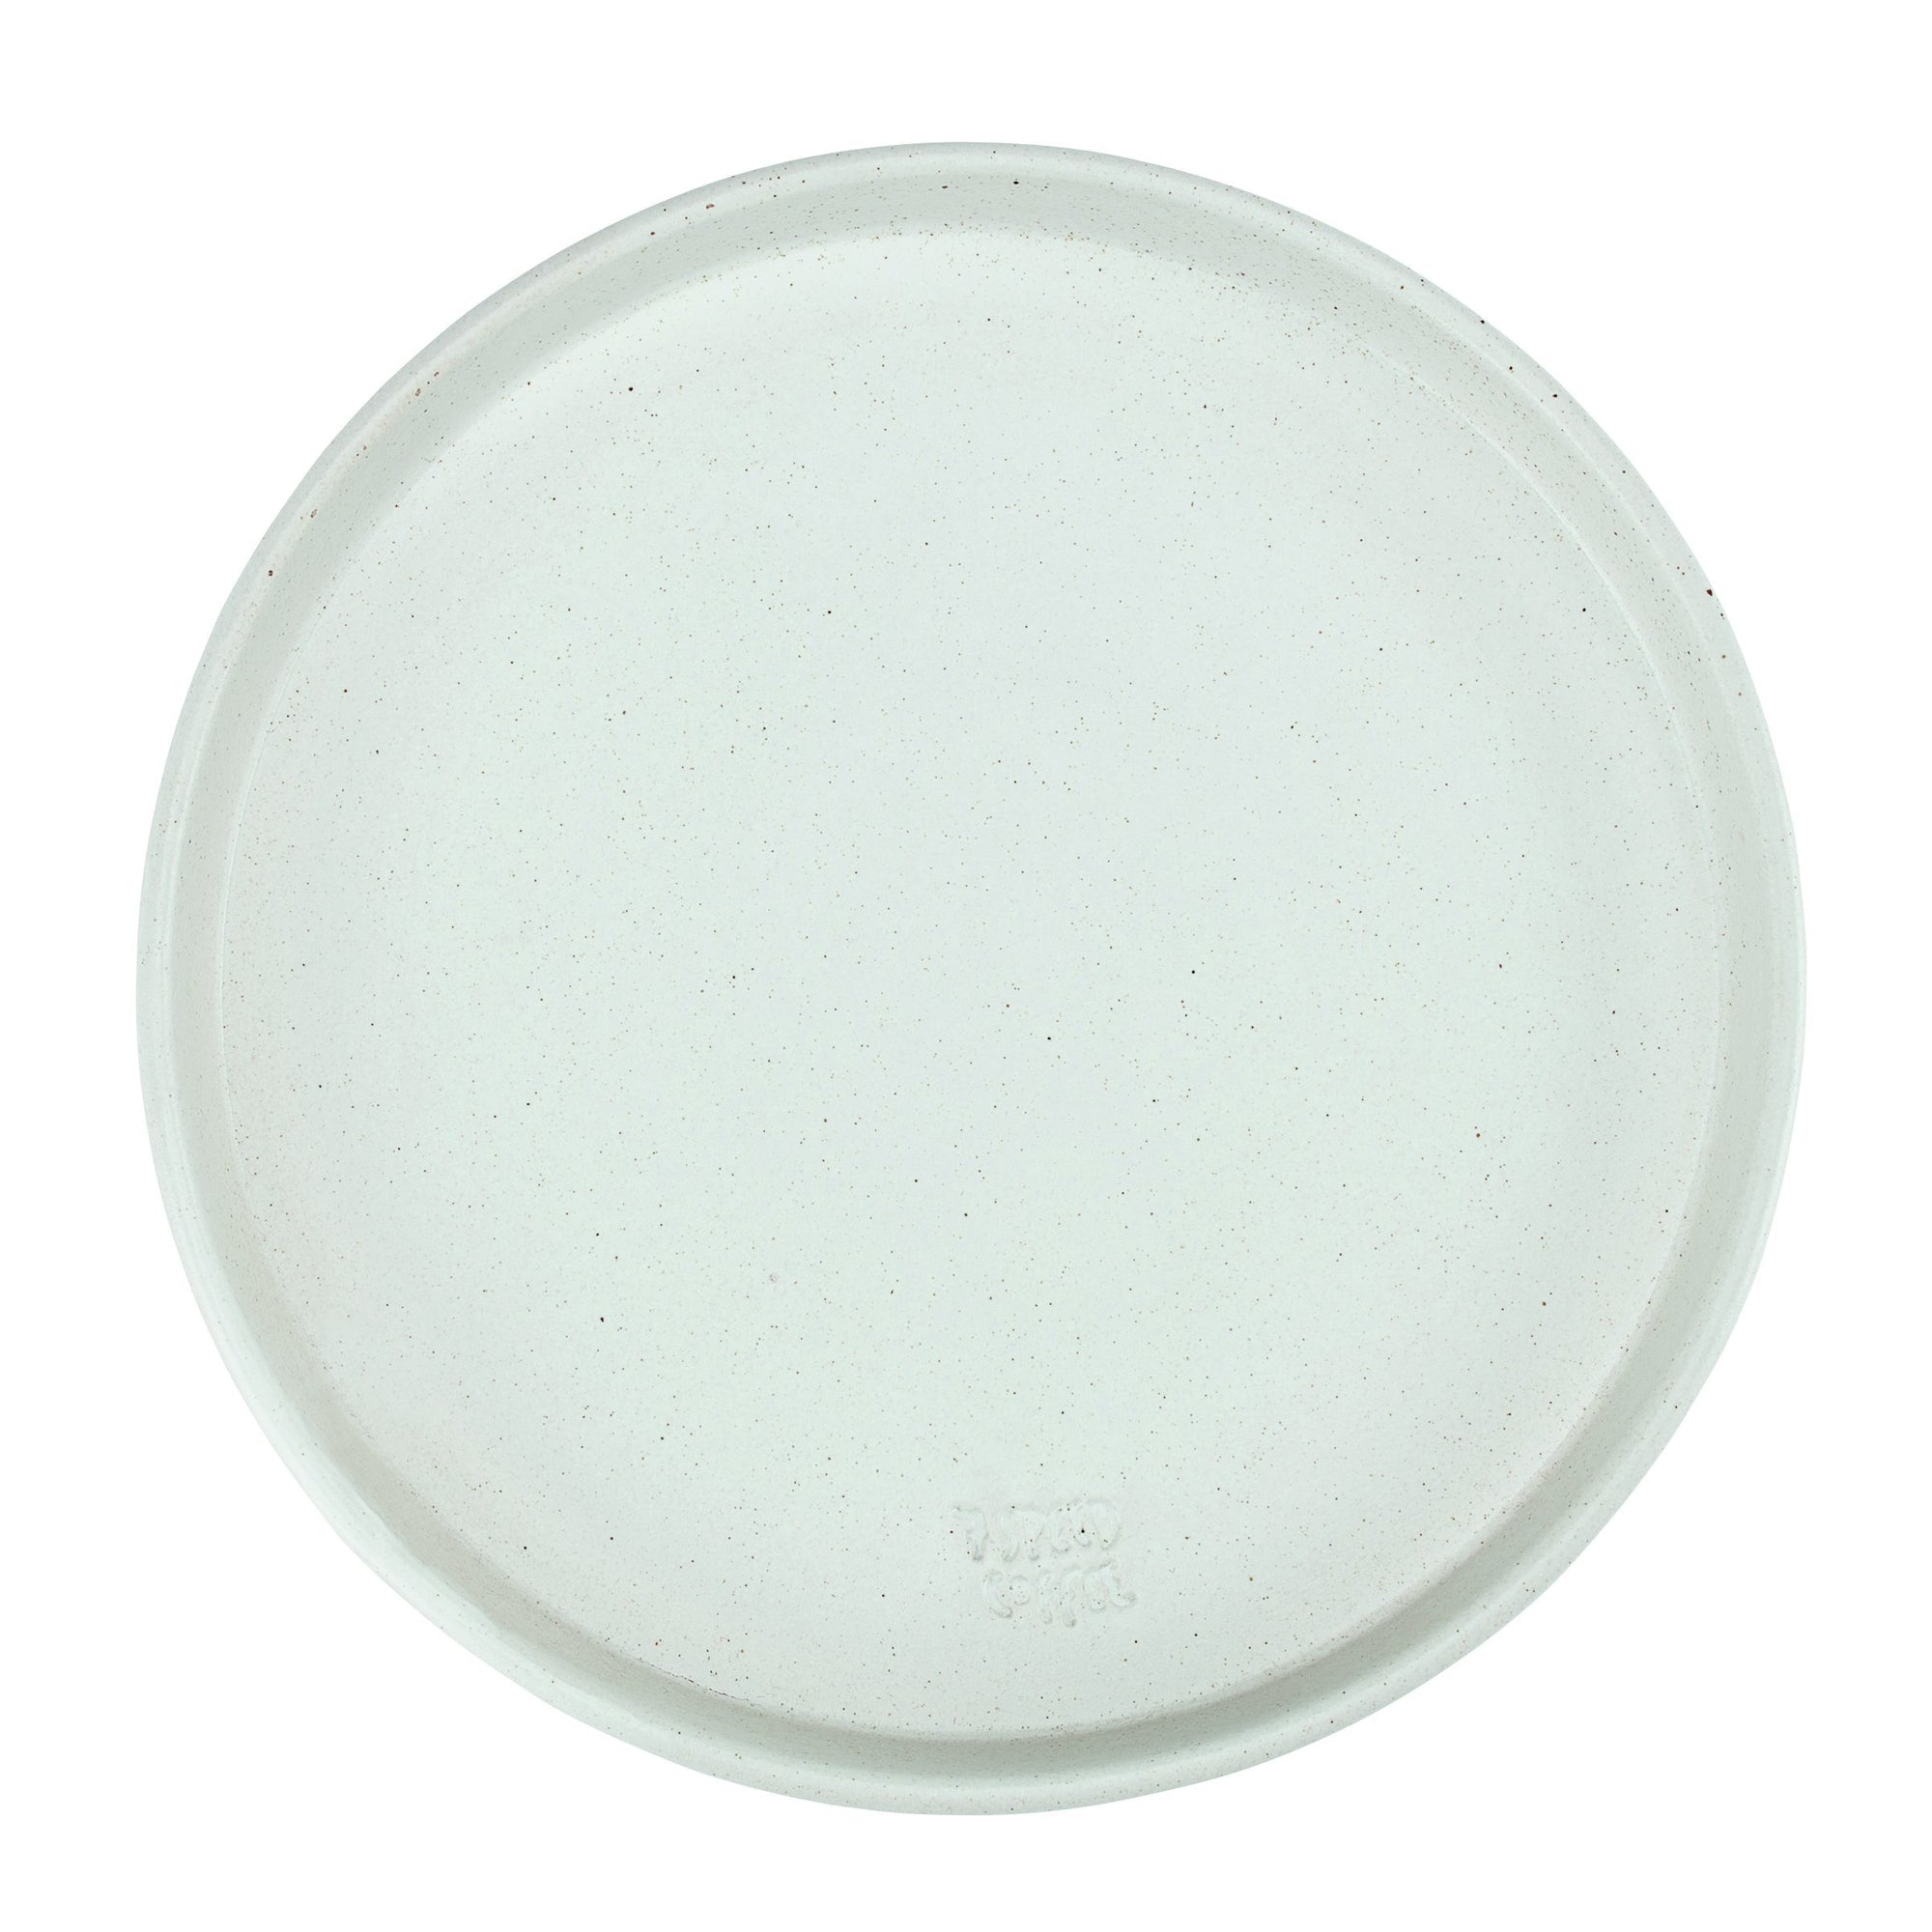 Speckled large dinner plate (BSH1075)